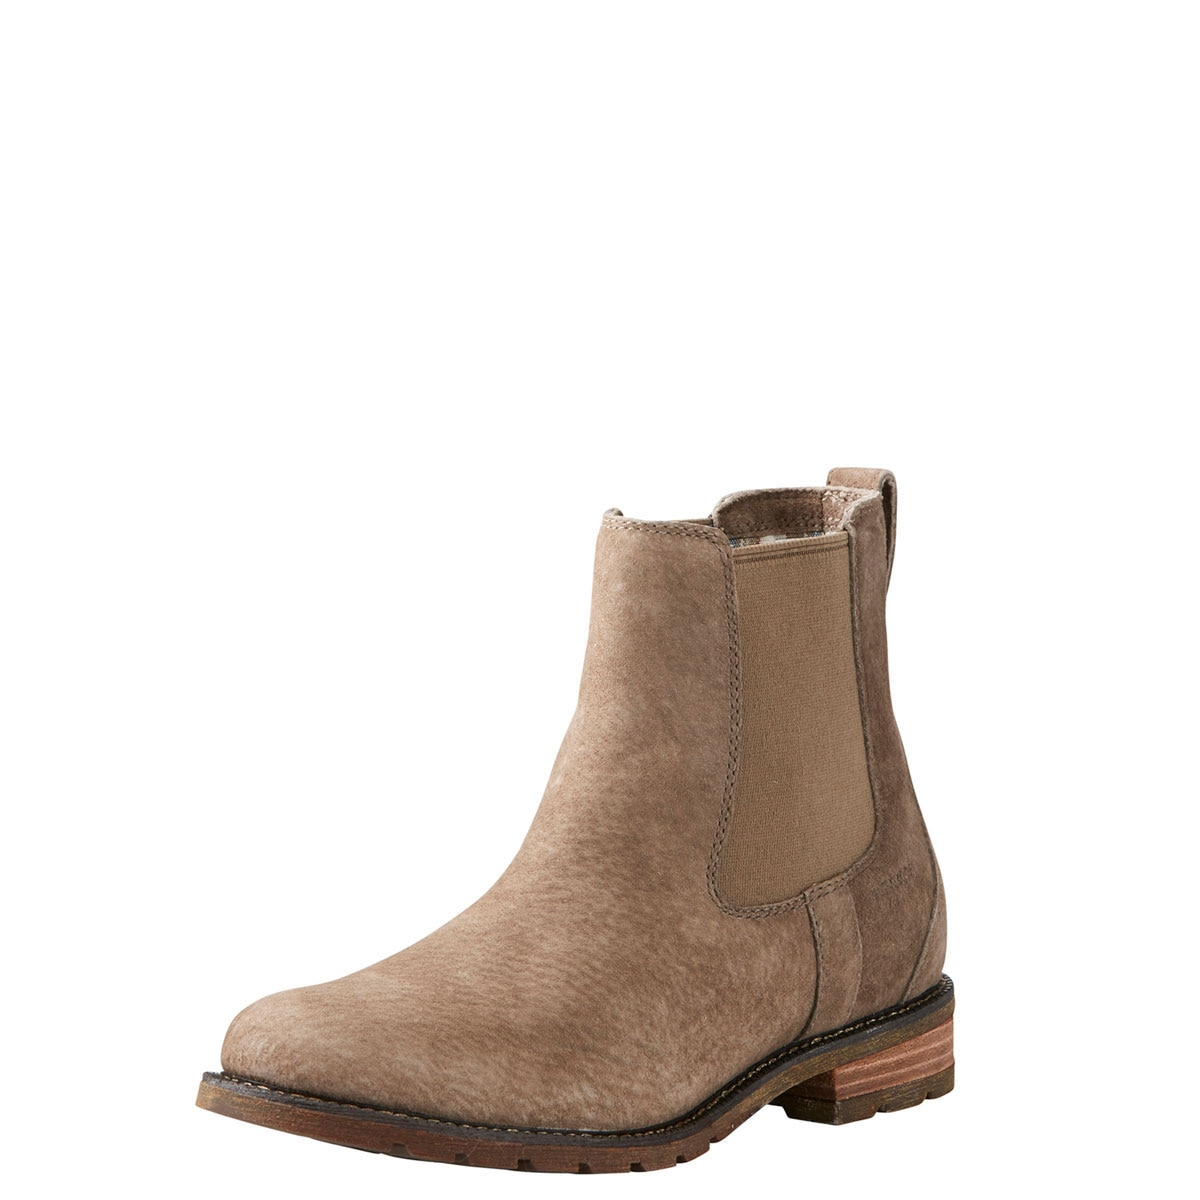 Ariat Wexford H2O Chelsea Boots